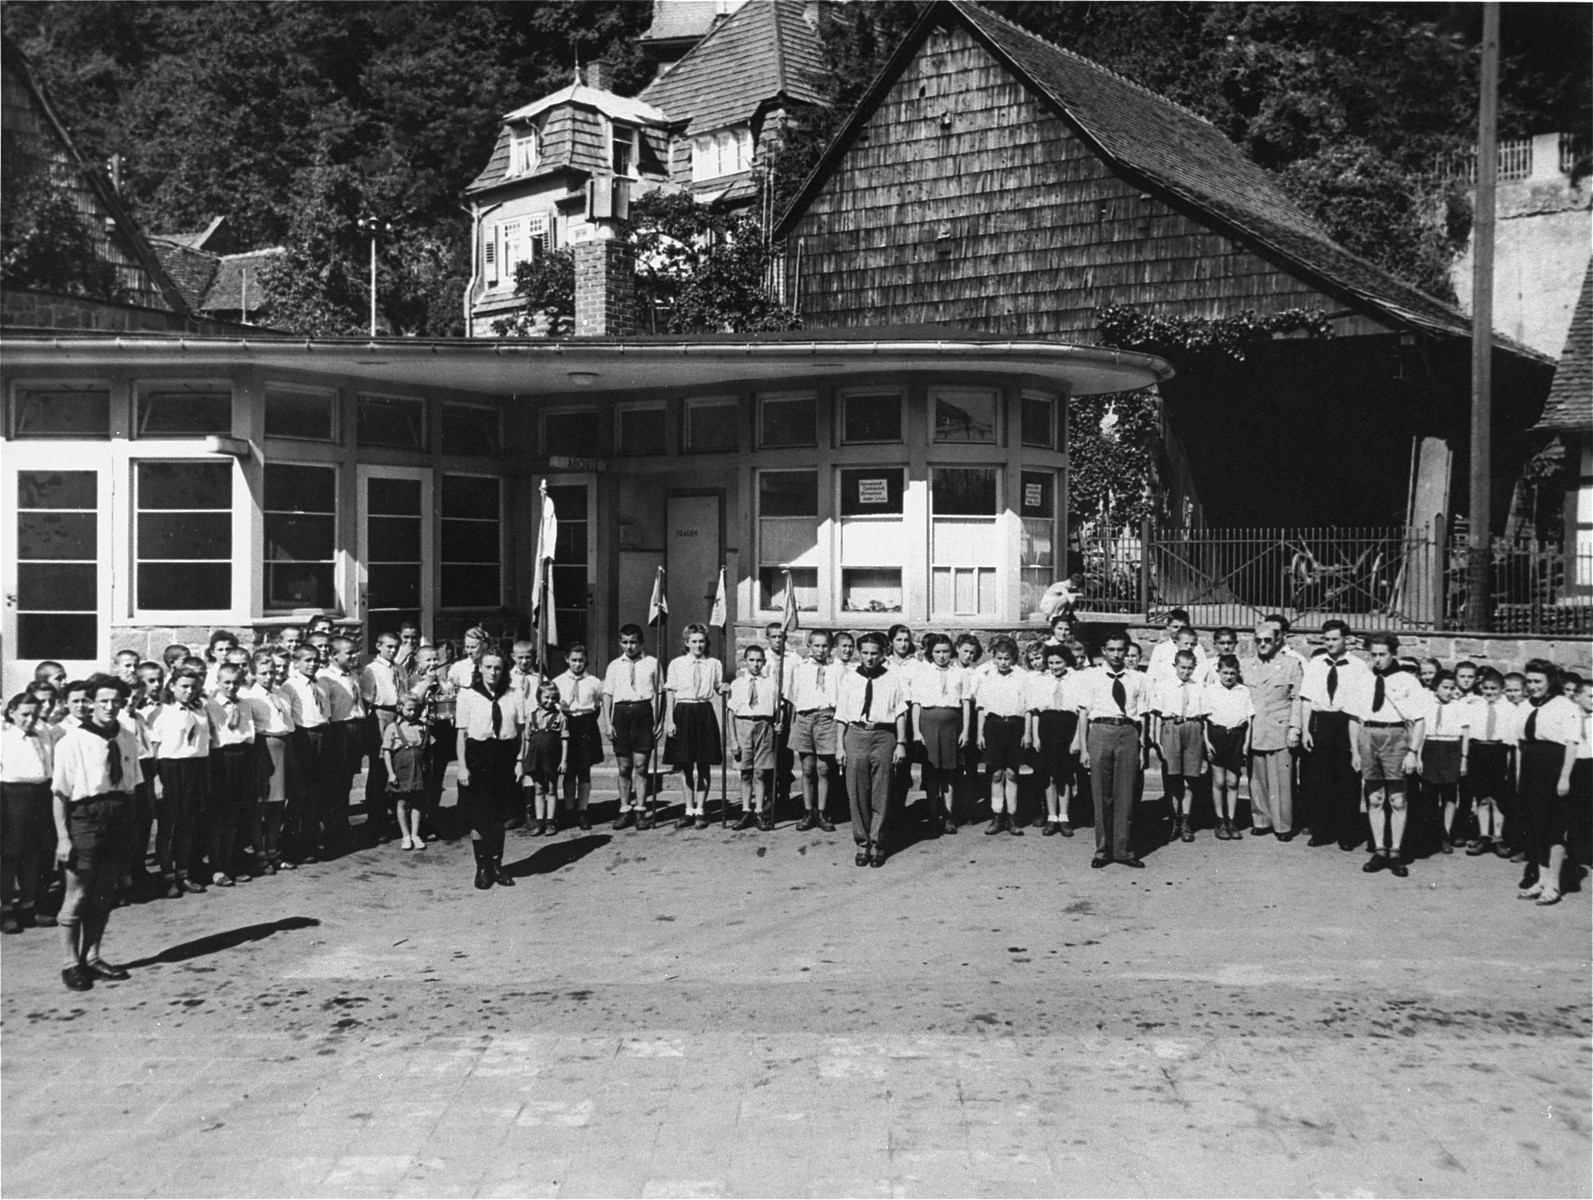 Group portrait of the children and teachers of the Lindenfels displaced persons' center for children.  Among those pictured are Mayer Zarnowiecki and the donor, Rose Guterman, who together headed the teaching staff.  The children's center was administered by members of the Hashomer Hatzair Zionist youth movement, who prepared the children for immigration to Palestine.